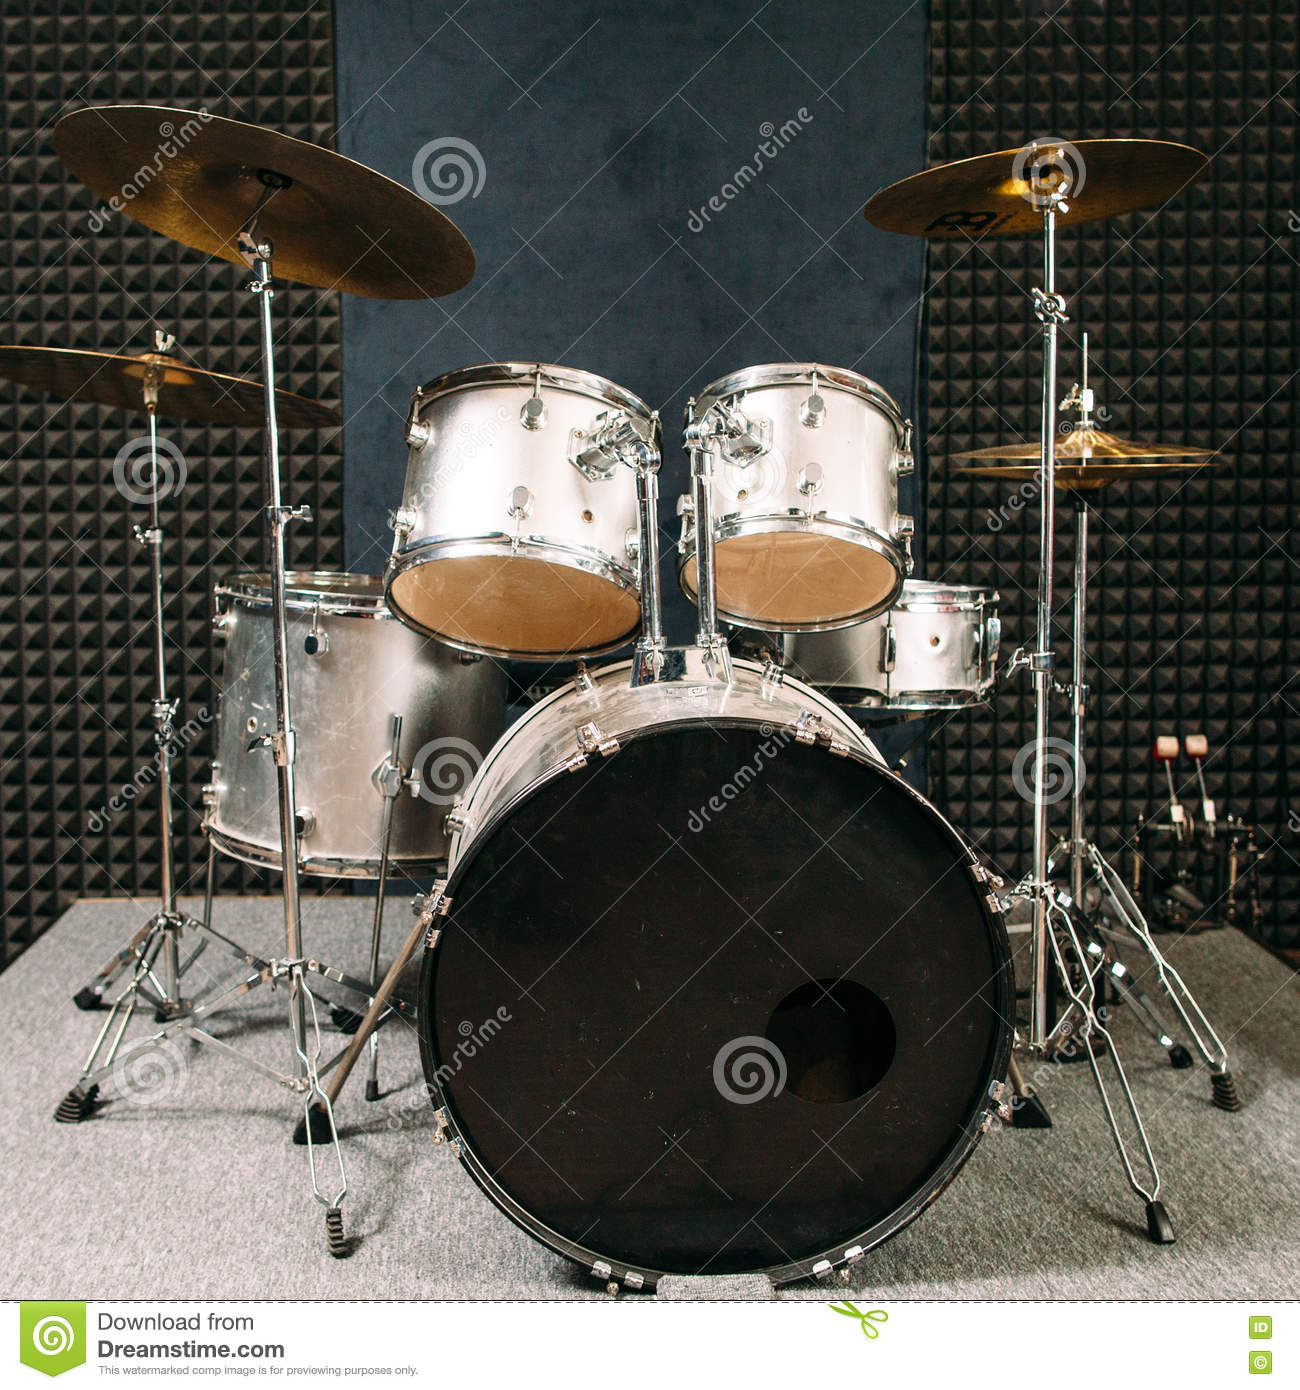 Drum Set On Stage Prepared For Playing Stock Image Image Of